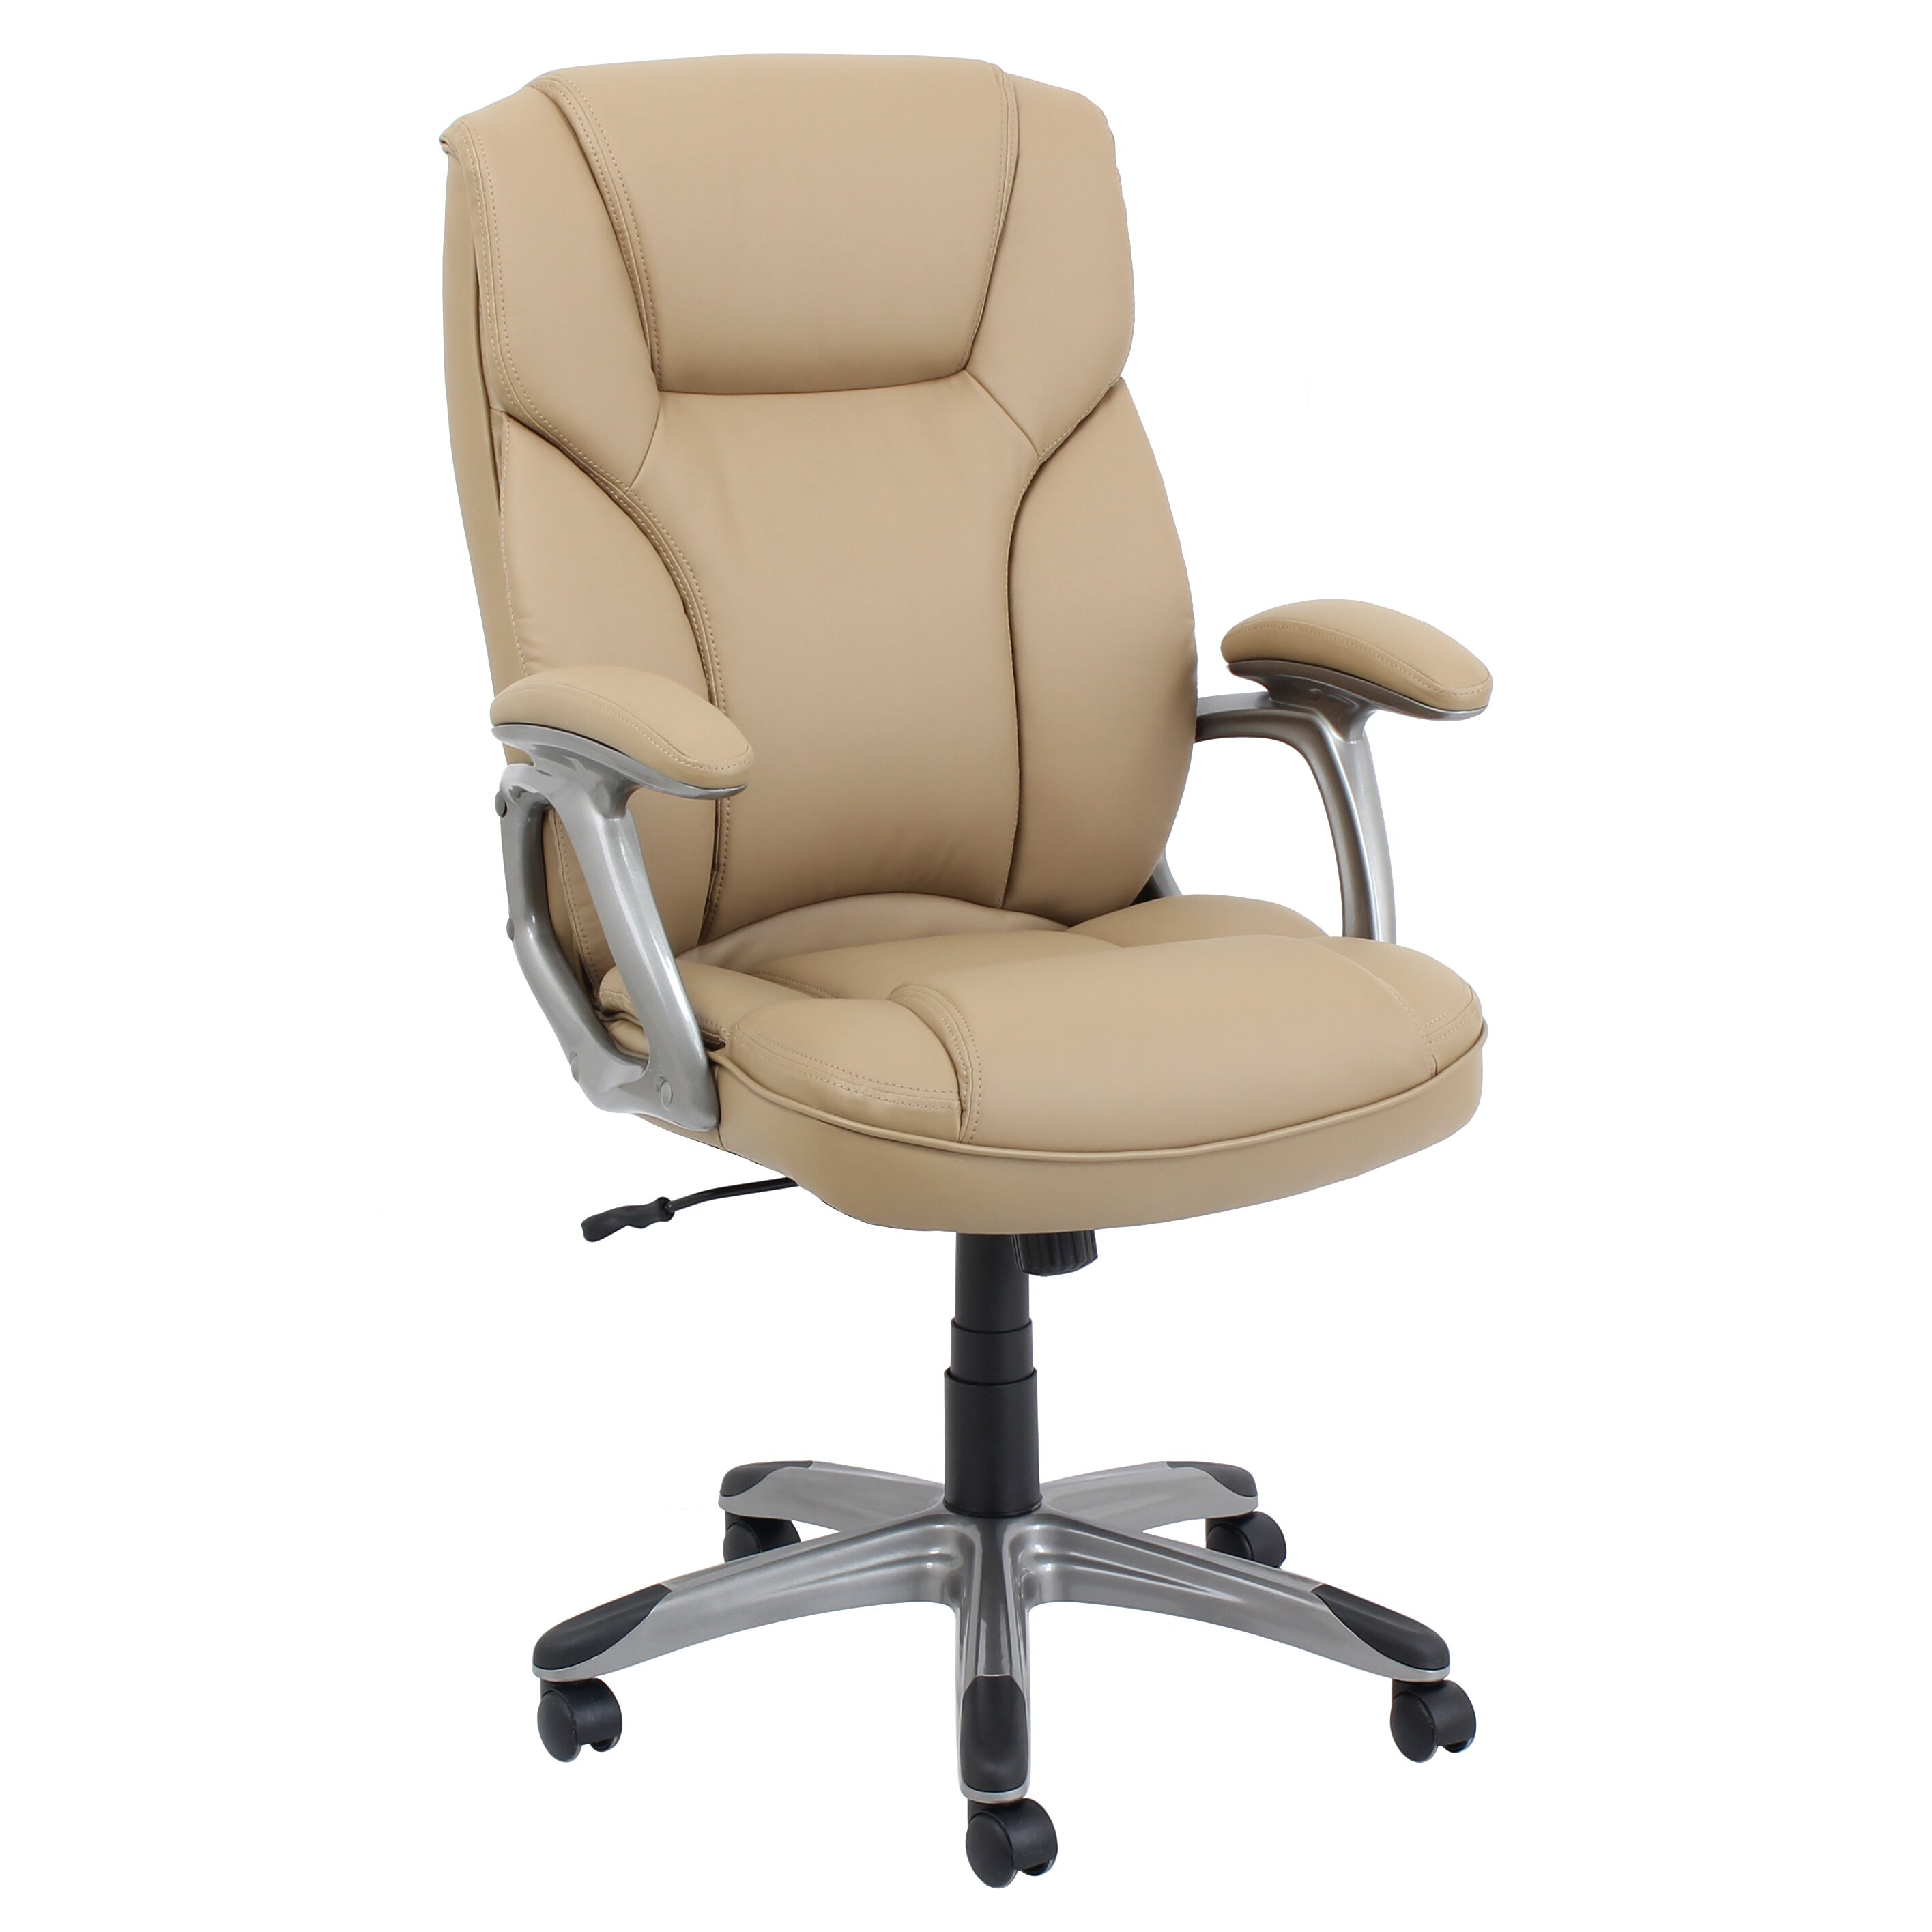 High-Back Leather Executive Office Chair With Arms